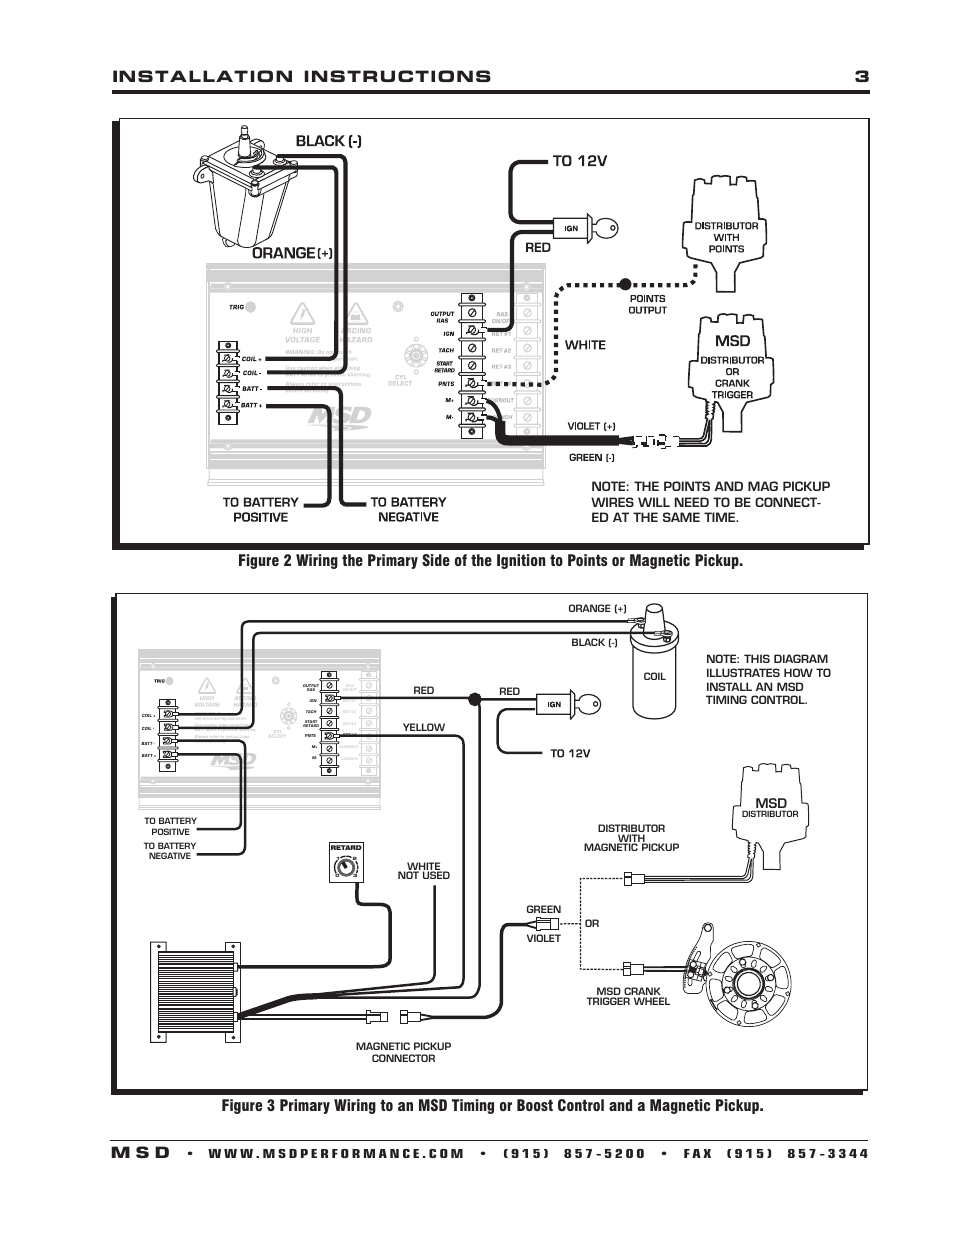 msd crank trigger wiring diagram 7al3 find wiring diagram \u2022 msd hei distributor wiring diagram installation instructions 3 m s d msd 7330 7al 3 ignition control rh manualsdir com msd ignition wiring diagram chevy msd 7al 3